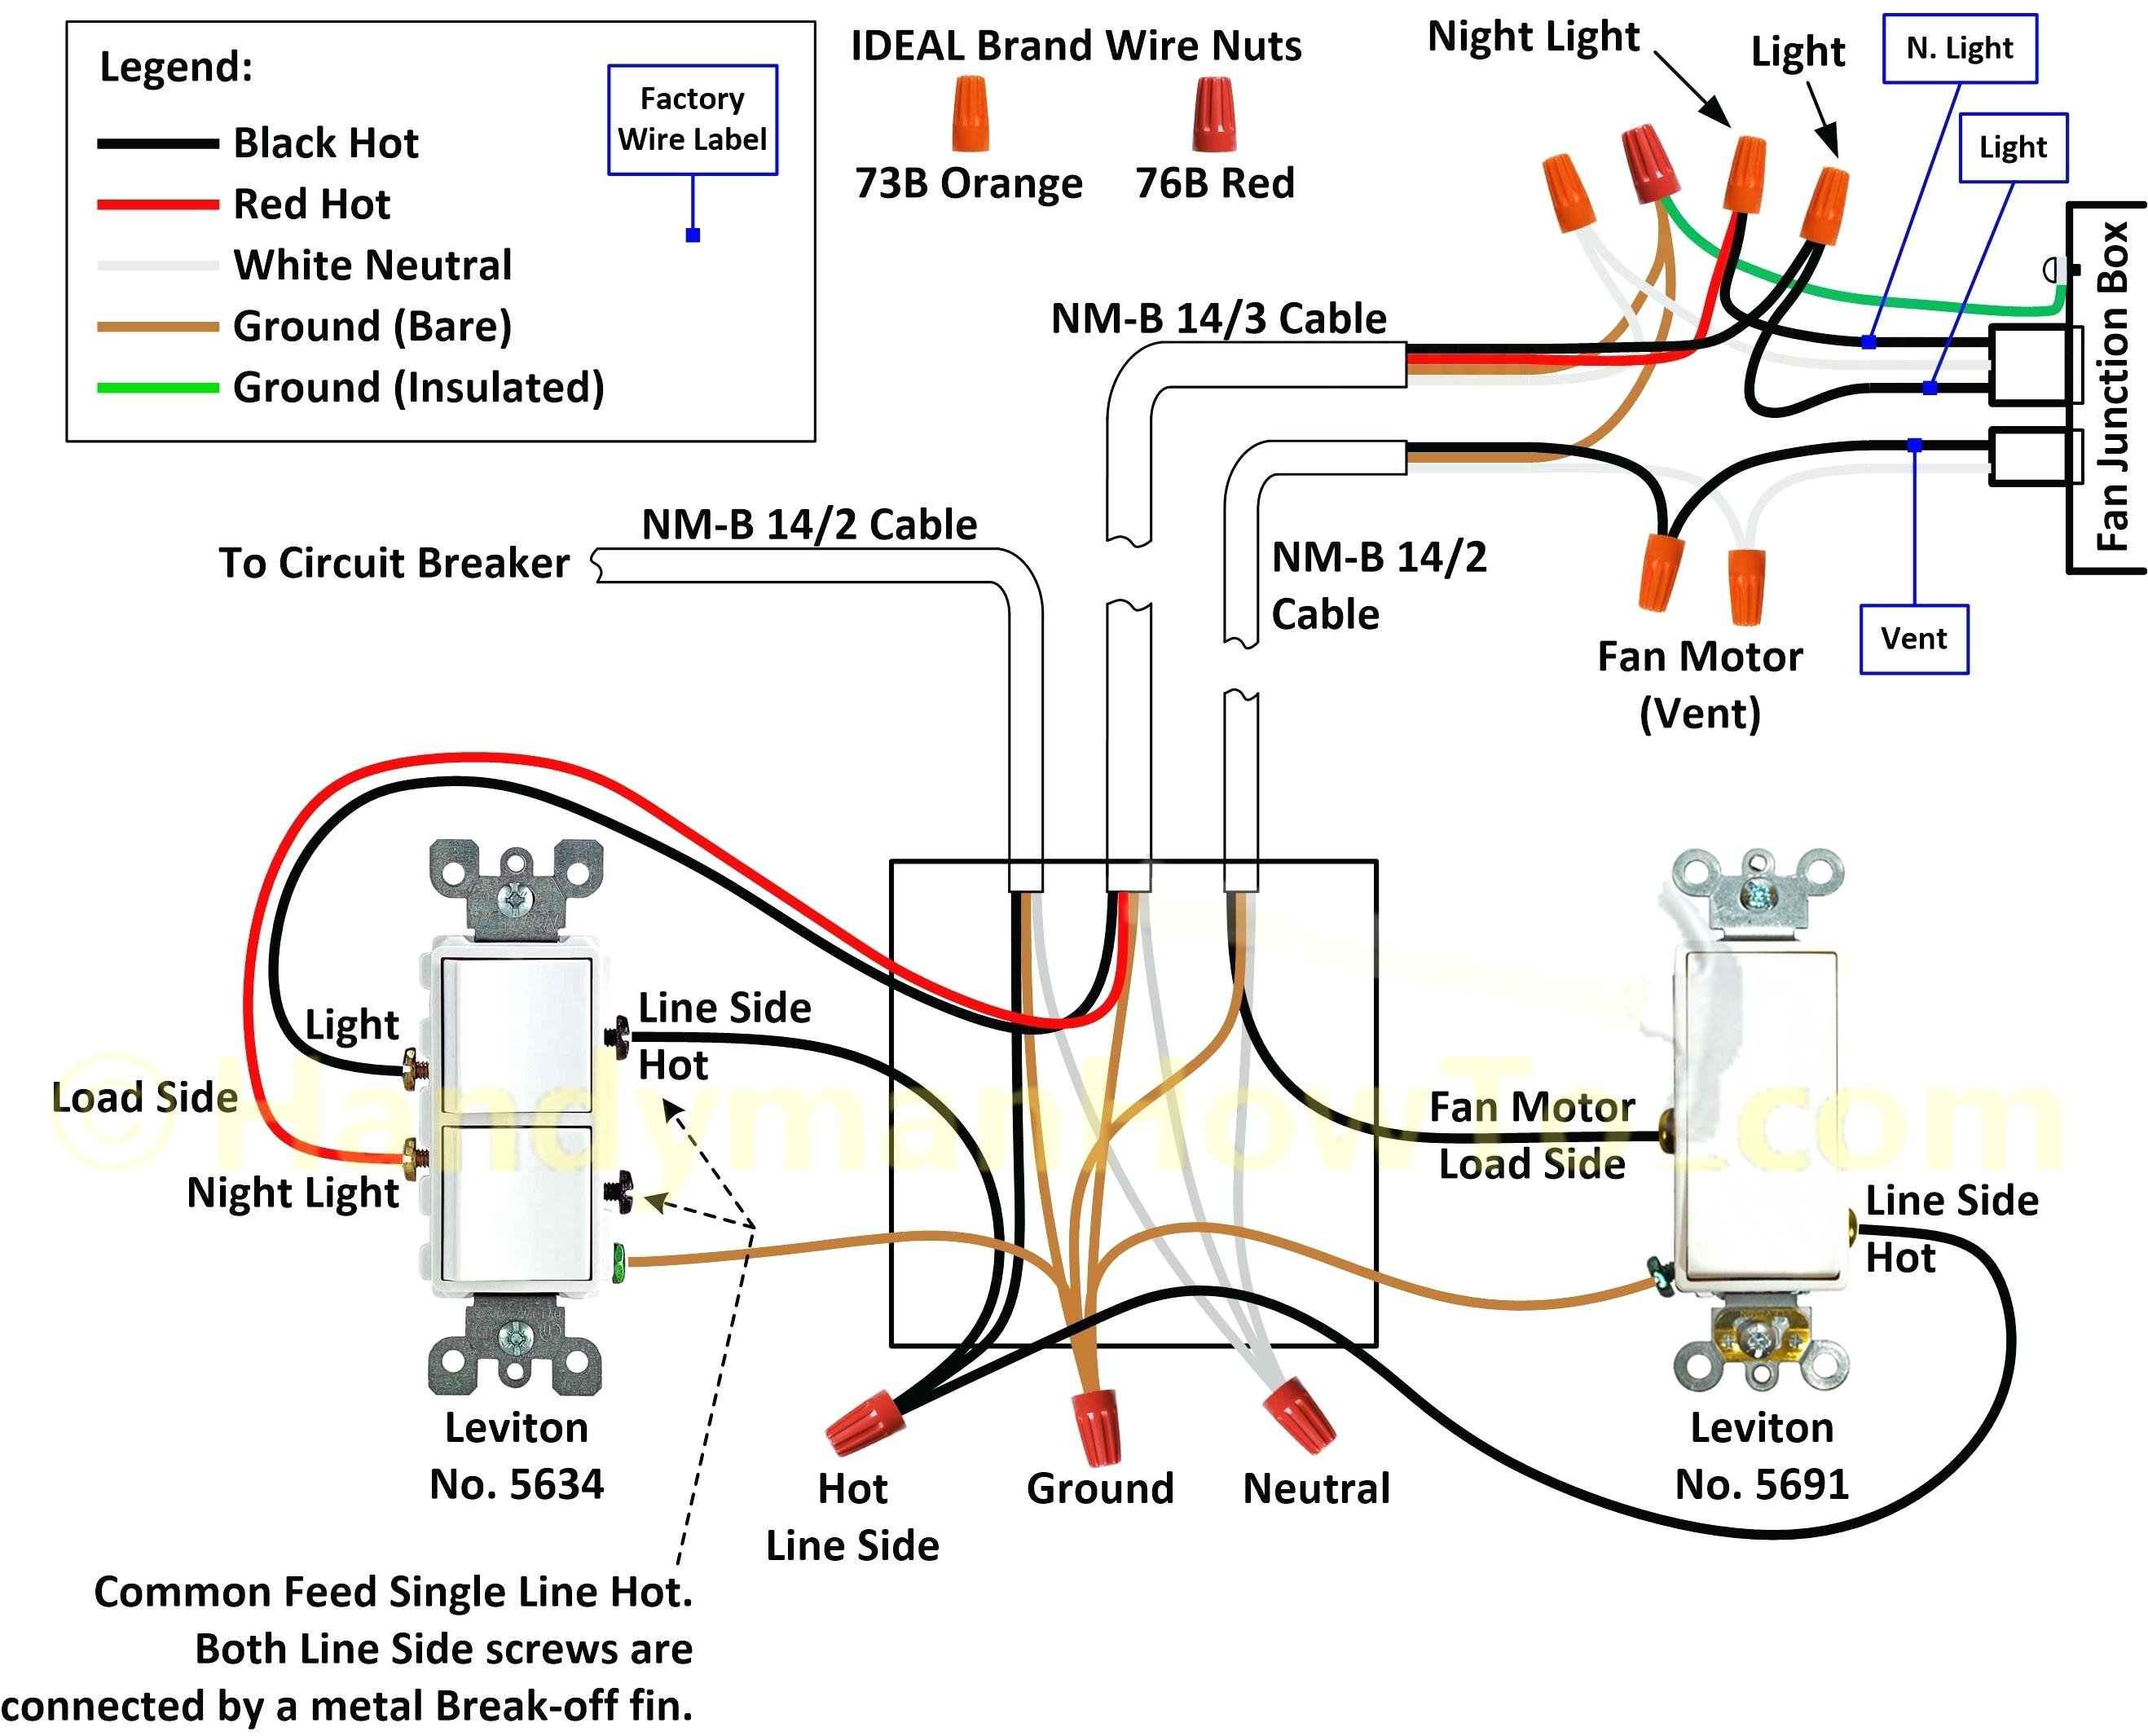 daisy chain on one switch wiring diagram lights experience of daisy chain on one switch wiring diagram lights